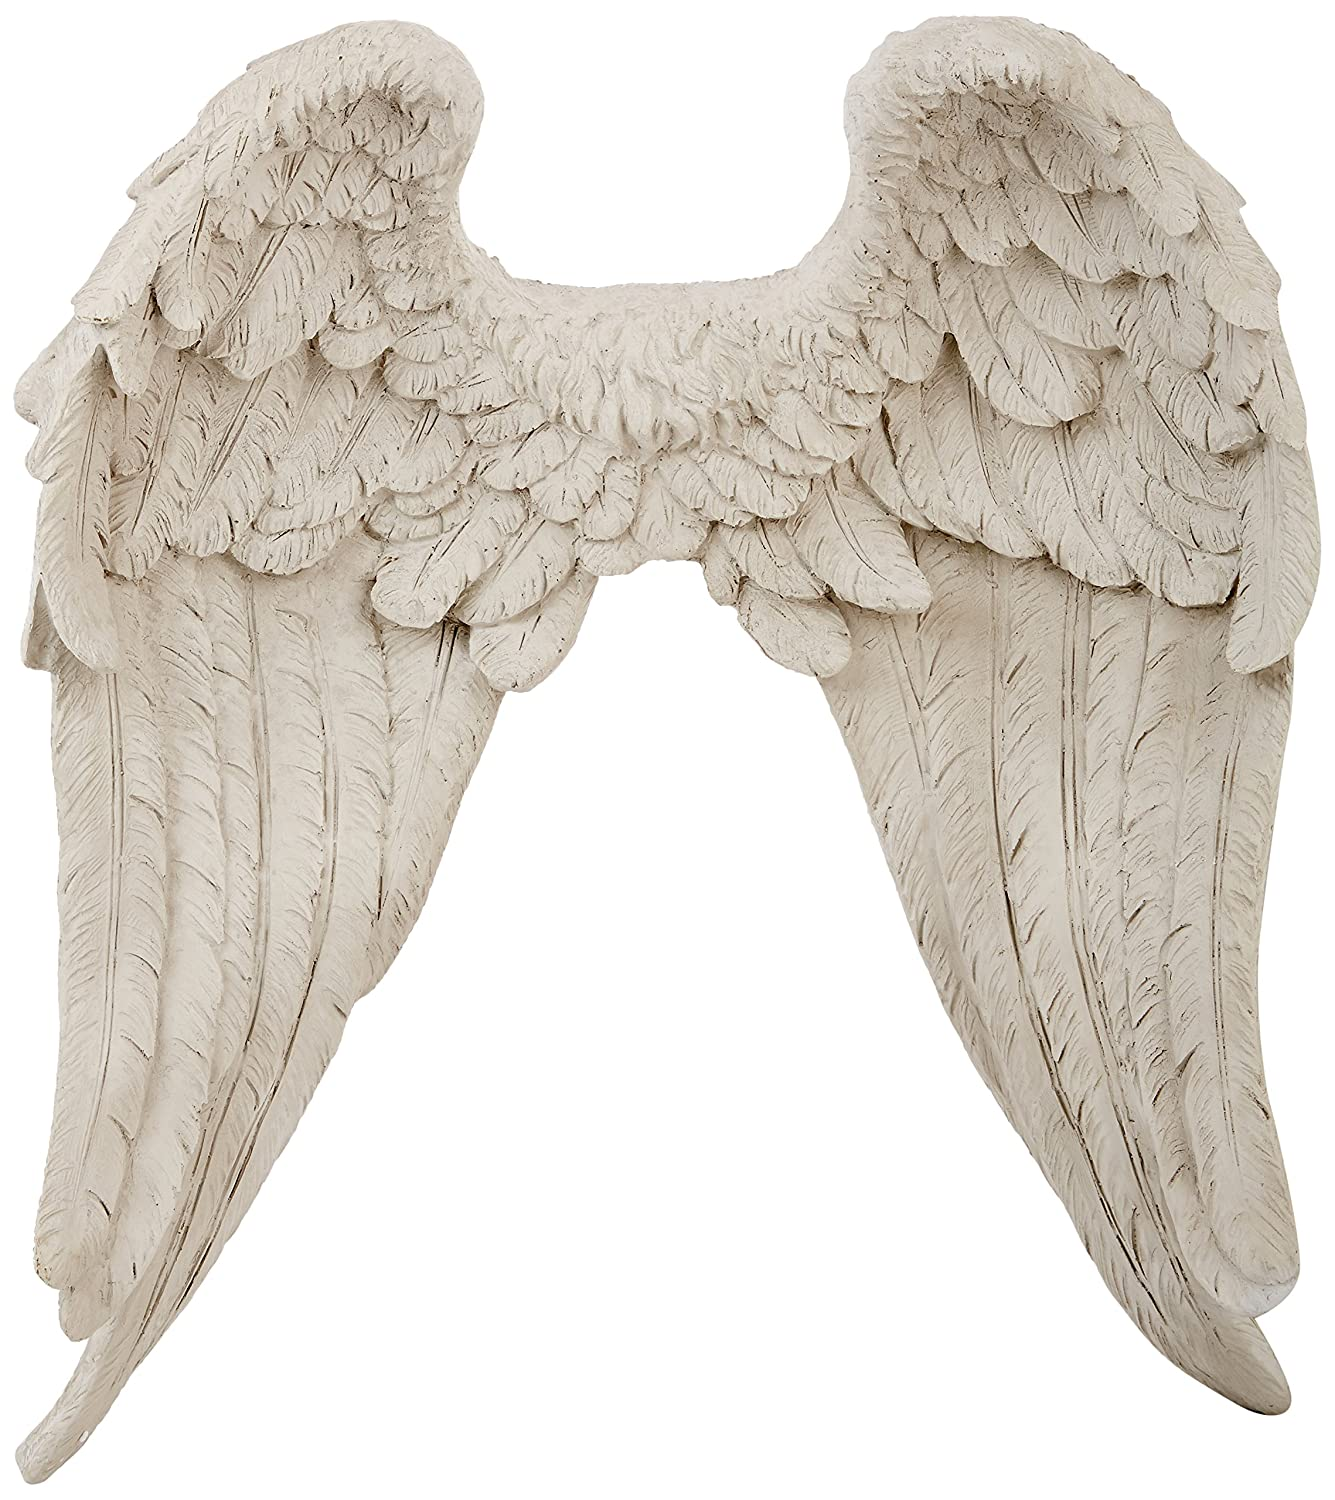 Angel wings sculpture wall mounted ornament art decor for Angel wings wall decoration uk